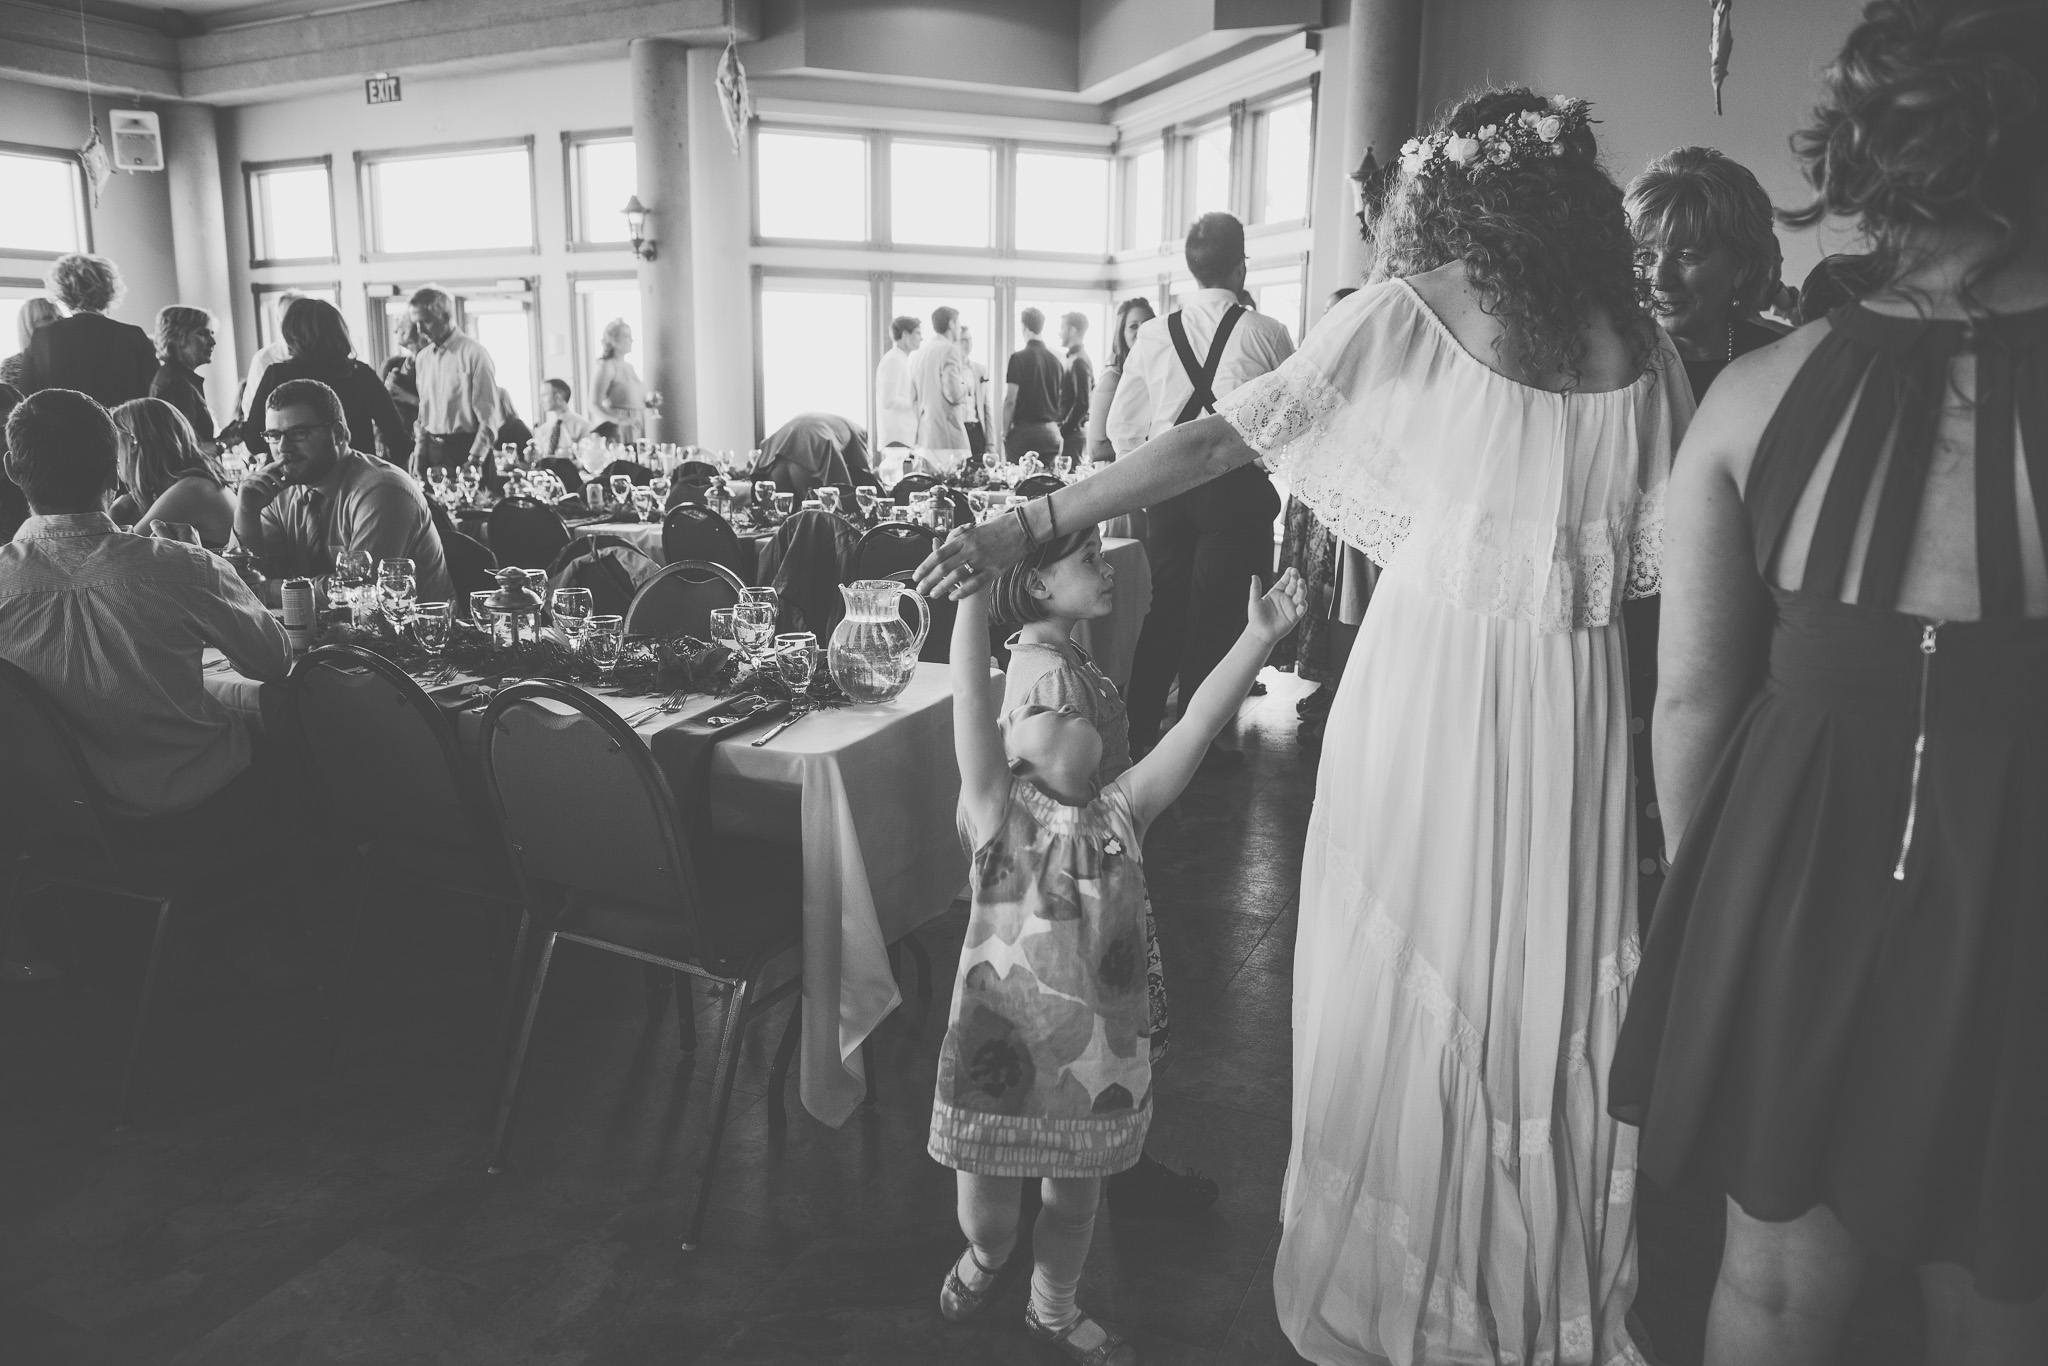 wedding, barrie wedding, barrie photographer, toronto photographer, barrie wedding photographer, toronto wedding photographer, jeannette breward photography, church, church wedding, waterfront, waterfront wedding, spring wedding, ontario wedding, couple, floral crown, religious ceremony, boho bride, boho wedding, bohemian wedding, floral crown, emotional, emotions, emotional wedding, black and white, ceremony, bridesmaids, wedding party, woods, forest, woods wedding, forest wedding, southshore centre, southshore community centre, barrie southshore community centre, barrie southshore centre, reception, party, dance, decor, details, flowers, floral